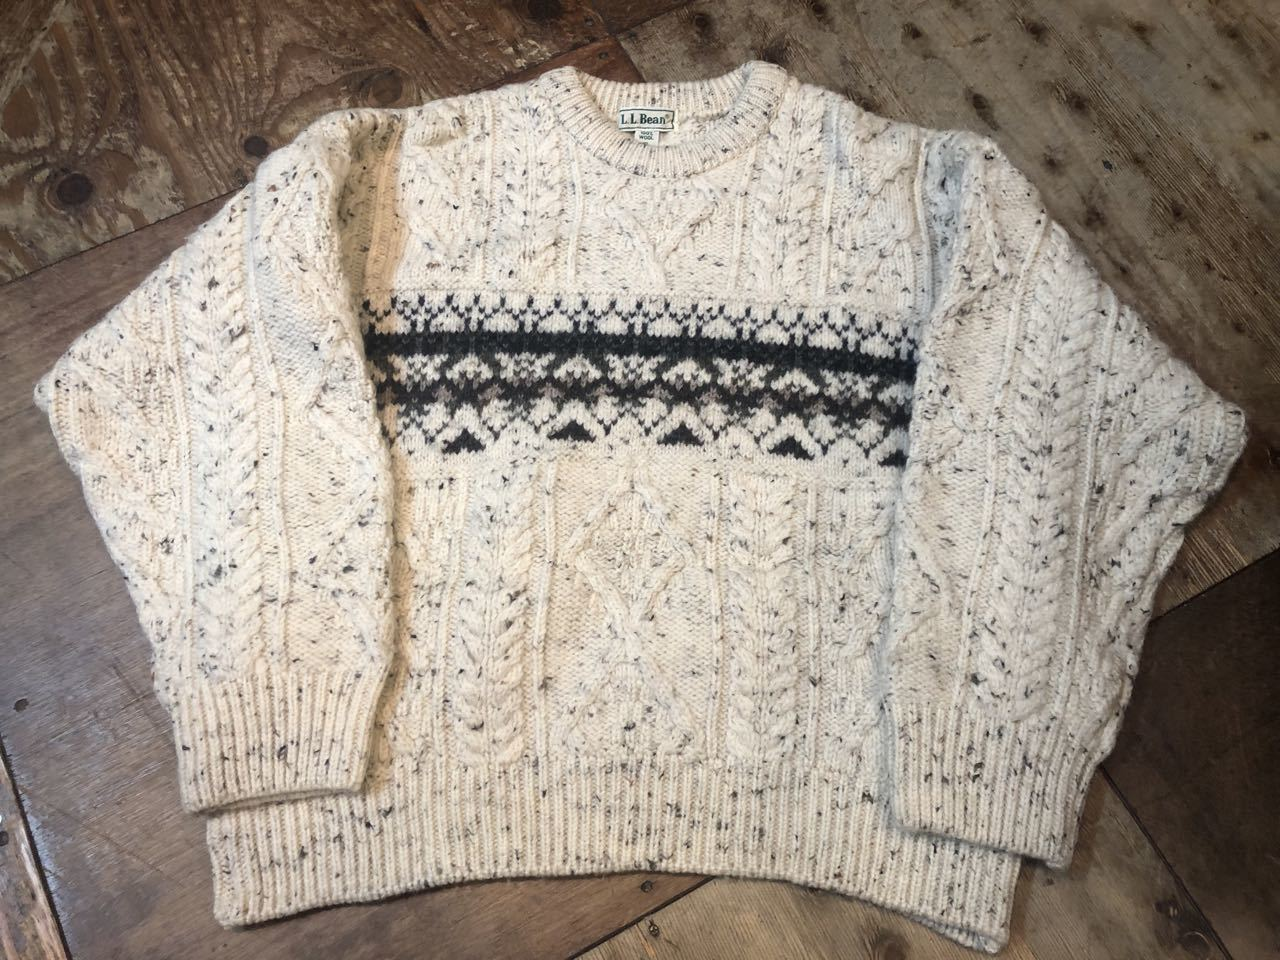 11月16日(土)入荷!MADE IN IRELAND L.L Bean all wool sweater!!_c0144020_13573841.jpg